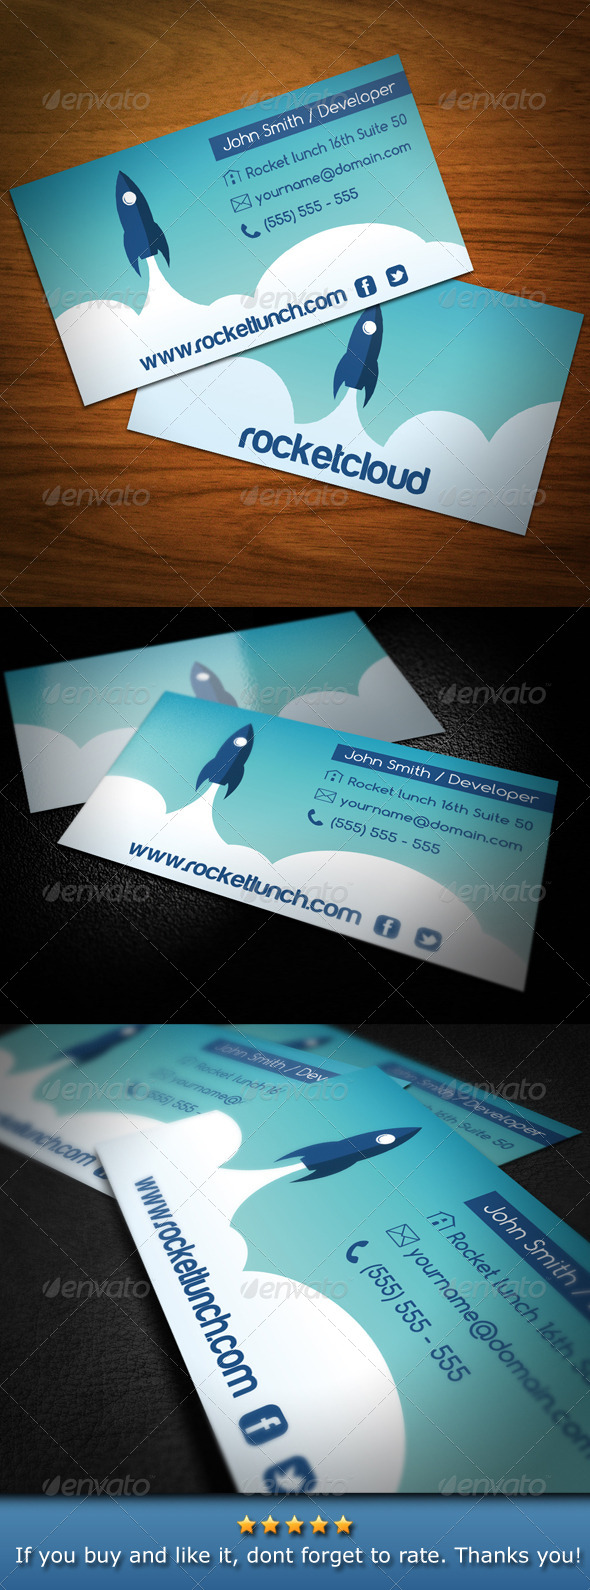 Rocket Launch Creative Business Card - Business Cards Print Templates